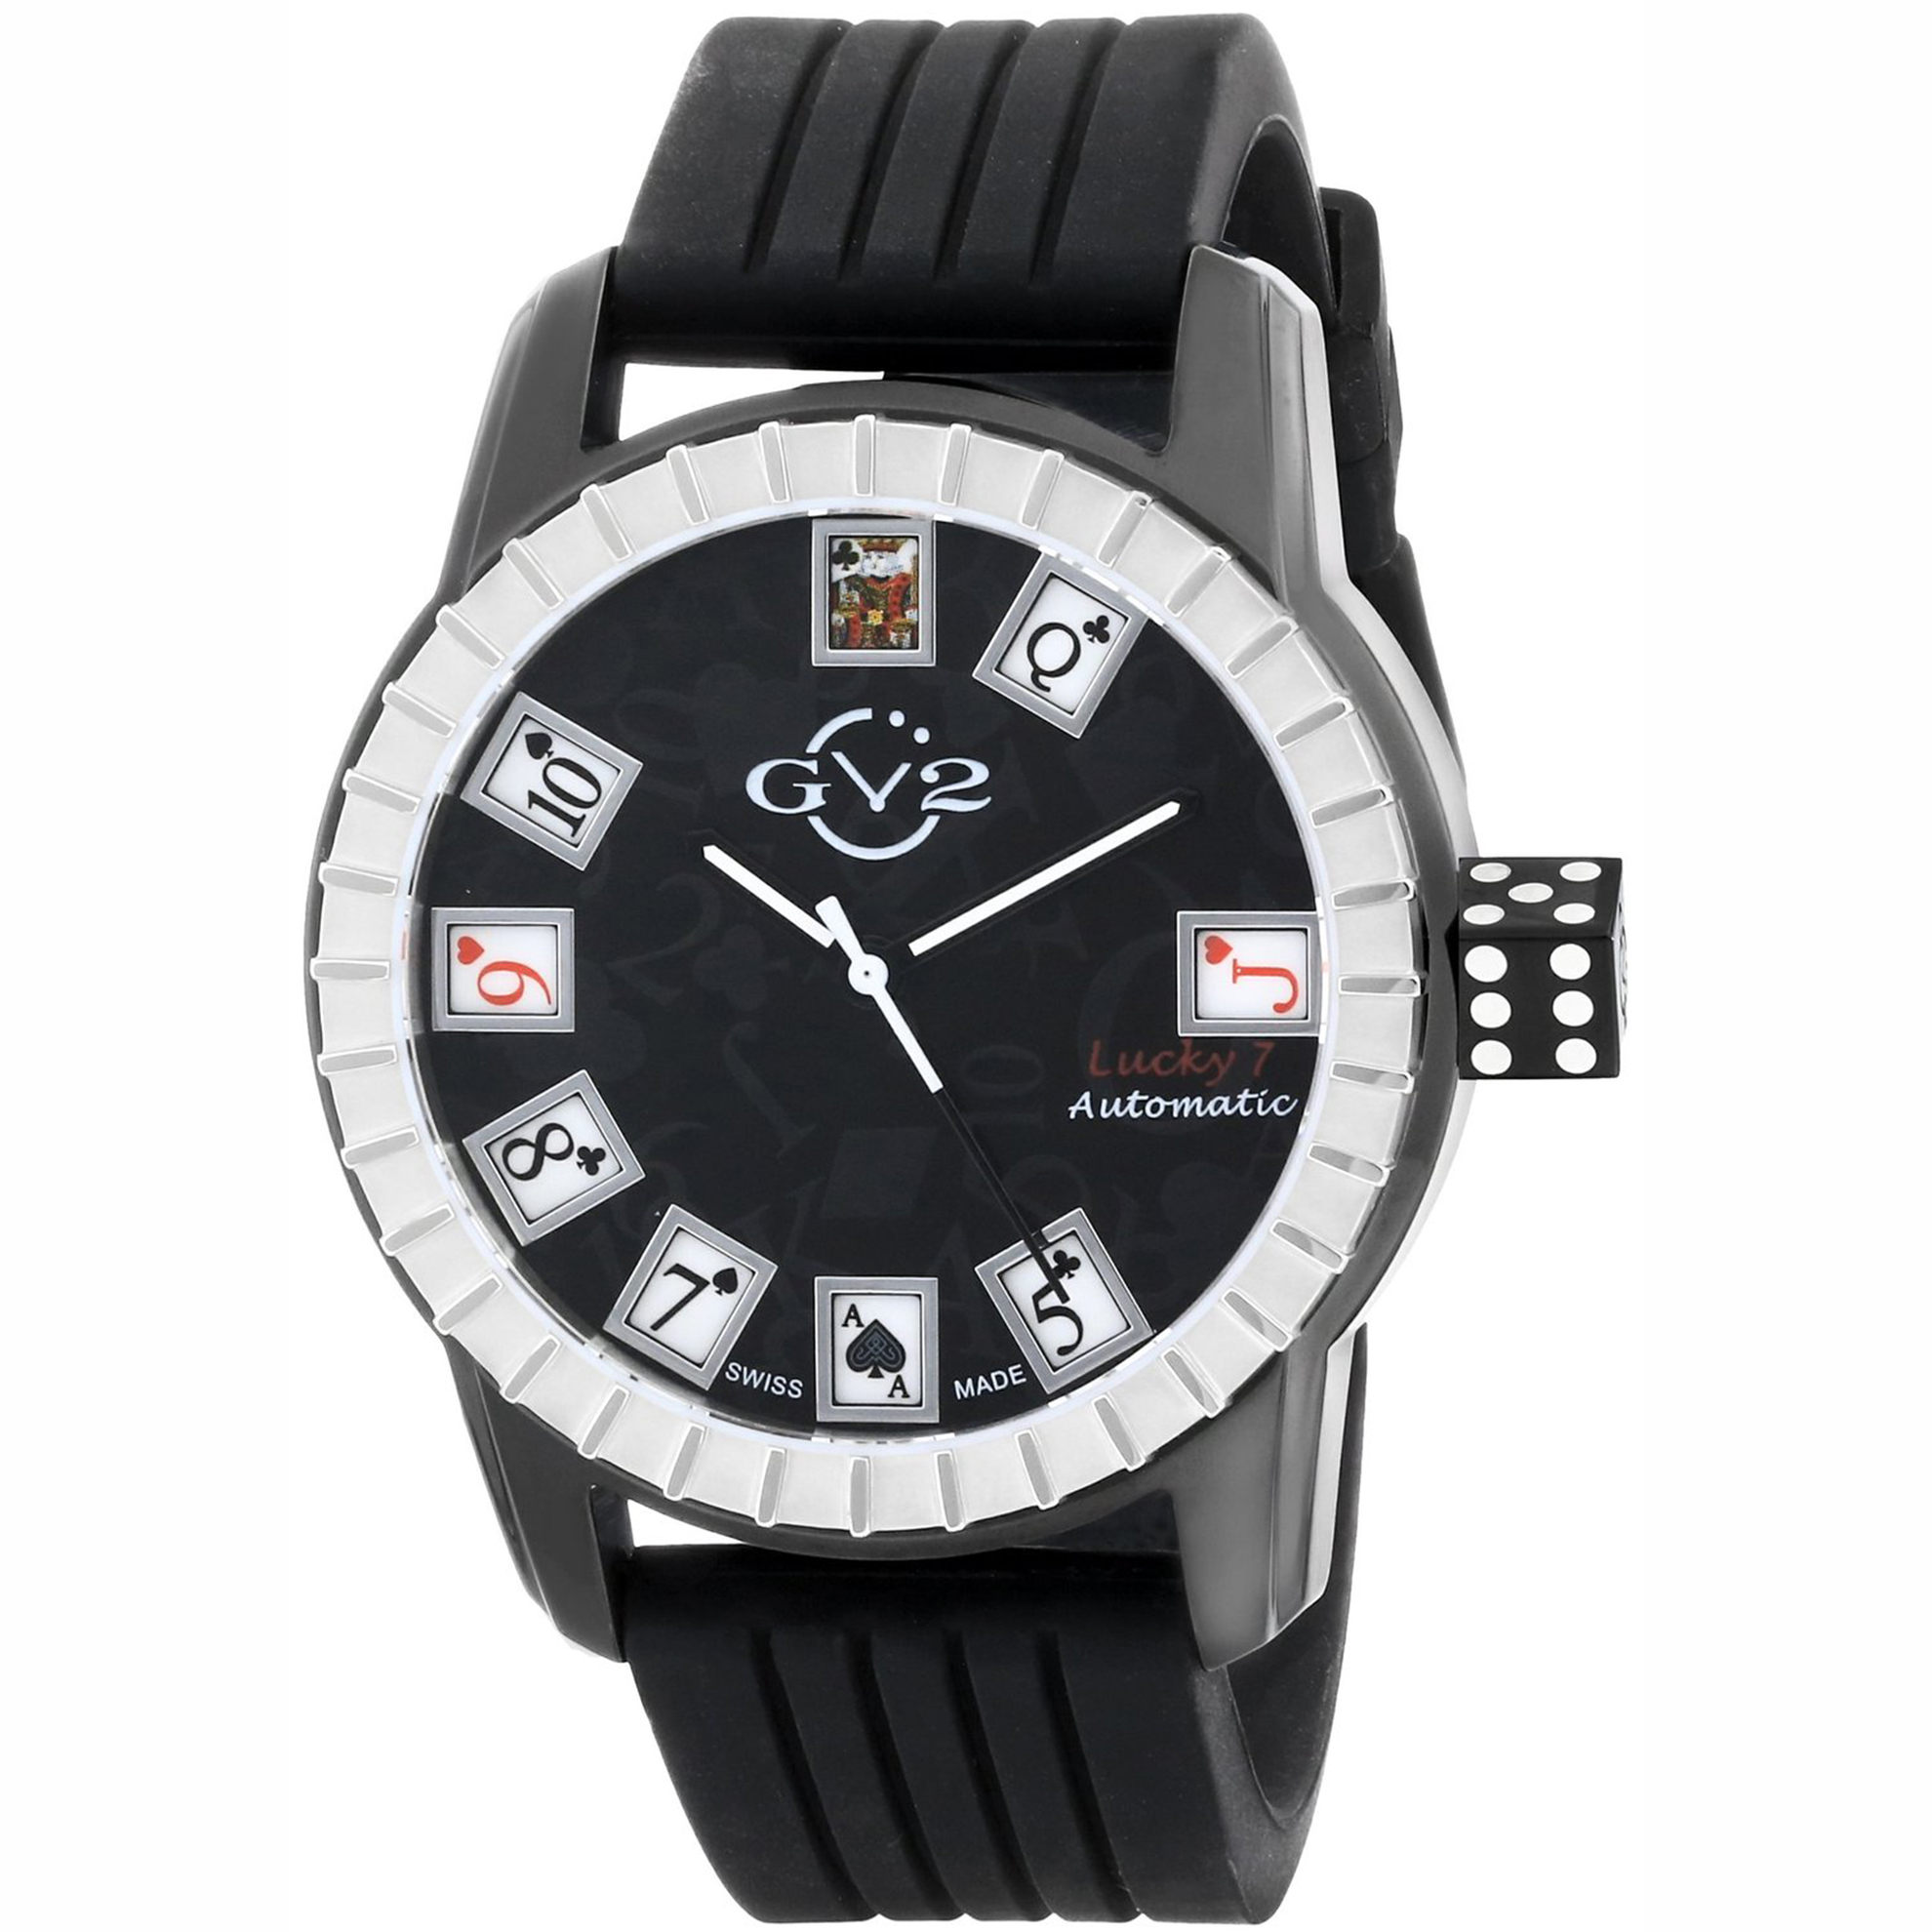 GV2 by Gevril 9301 GV2 by Gevril Limited Edition Swiss Made Automatic Silver/Black